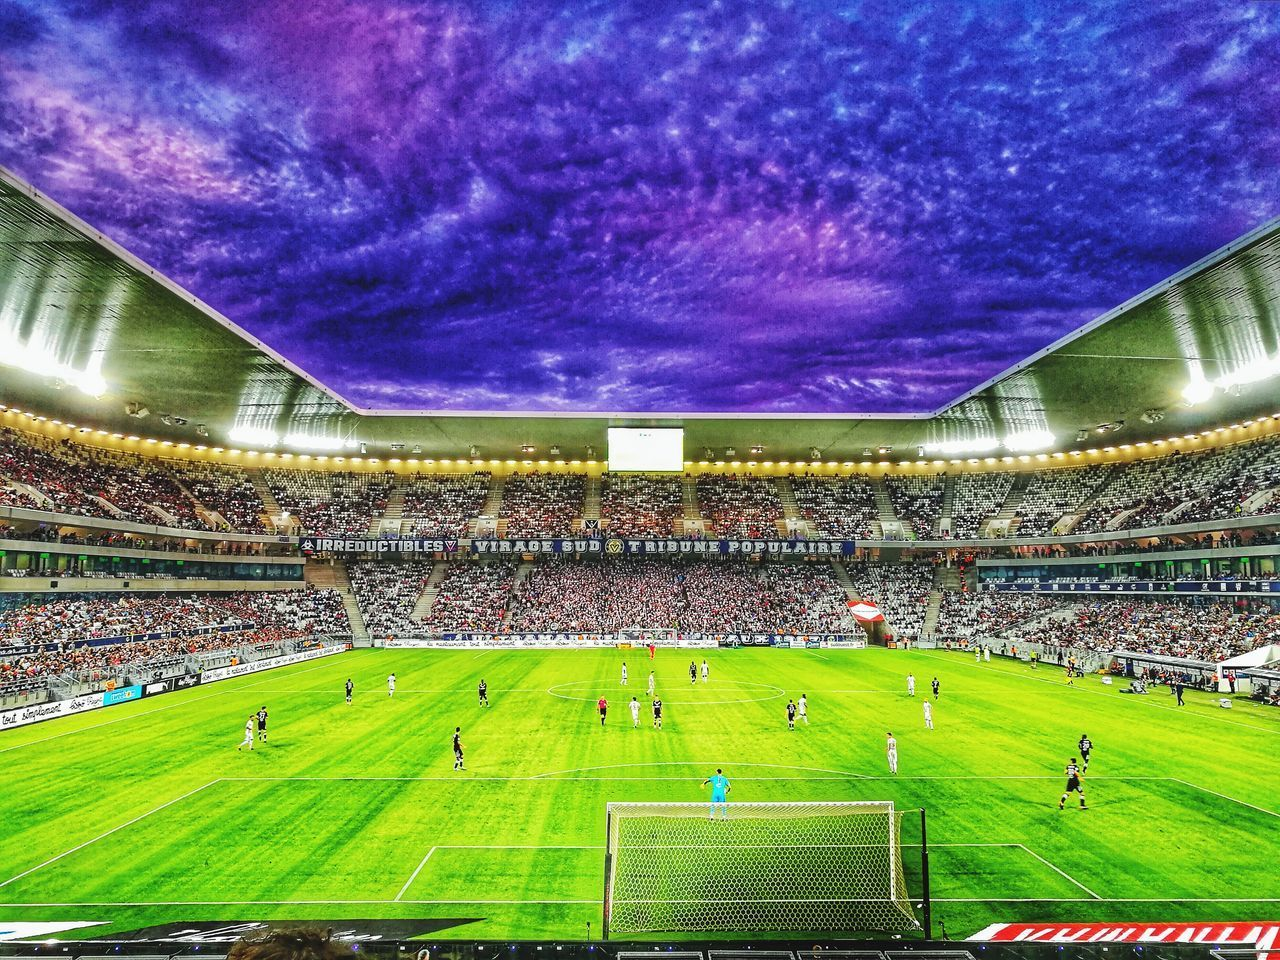 stadium, soccer, grass, sports team, blue, green color, spectator, event, team sport, soccer field, playing field, fan - enthusiast, outdoors, audience, day, people